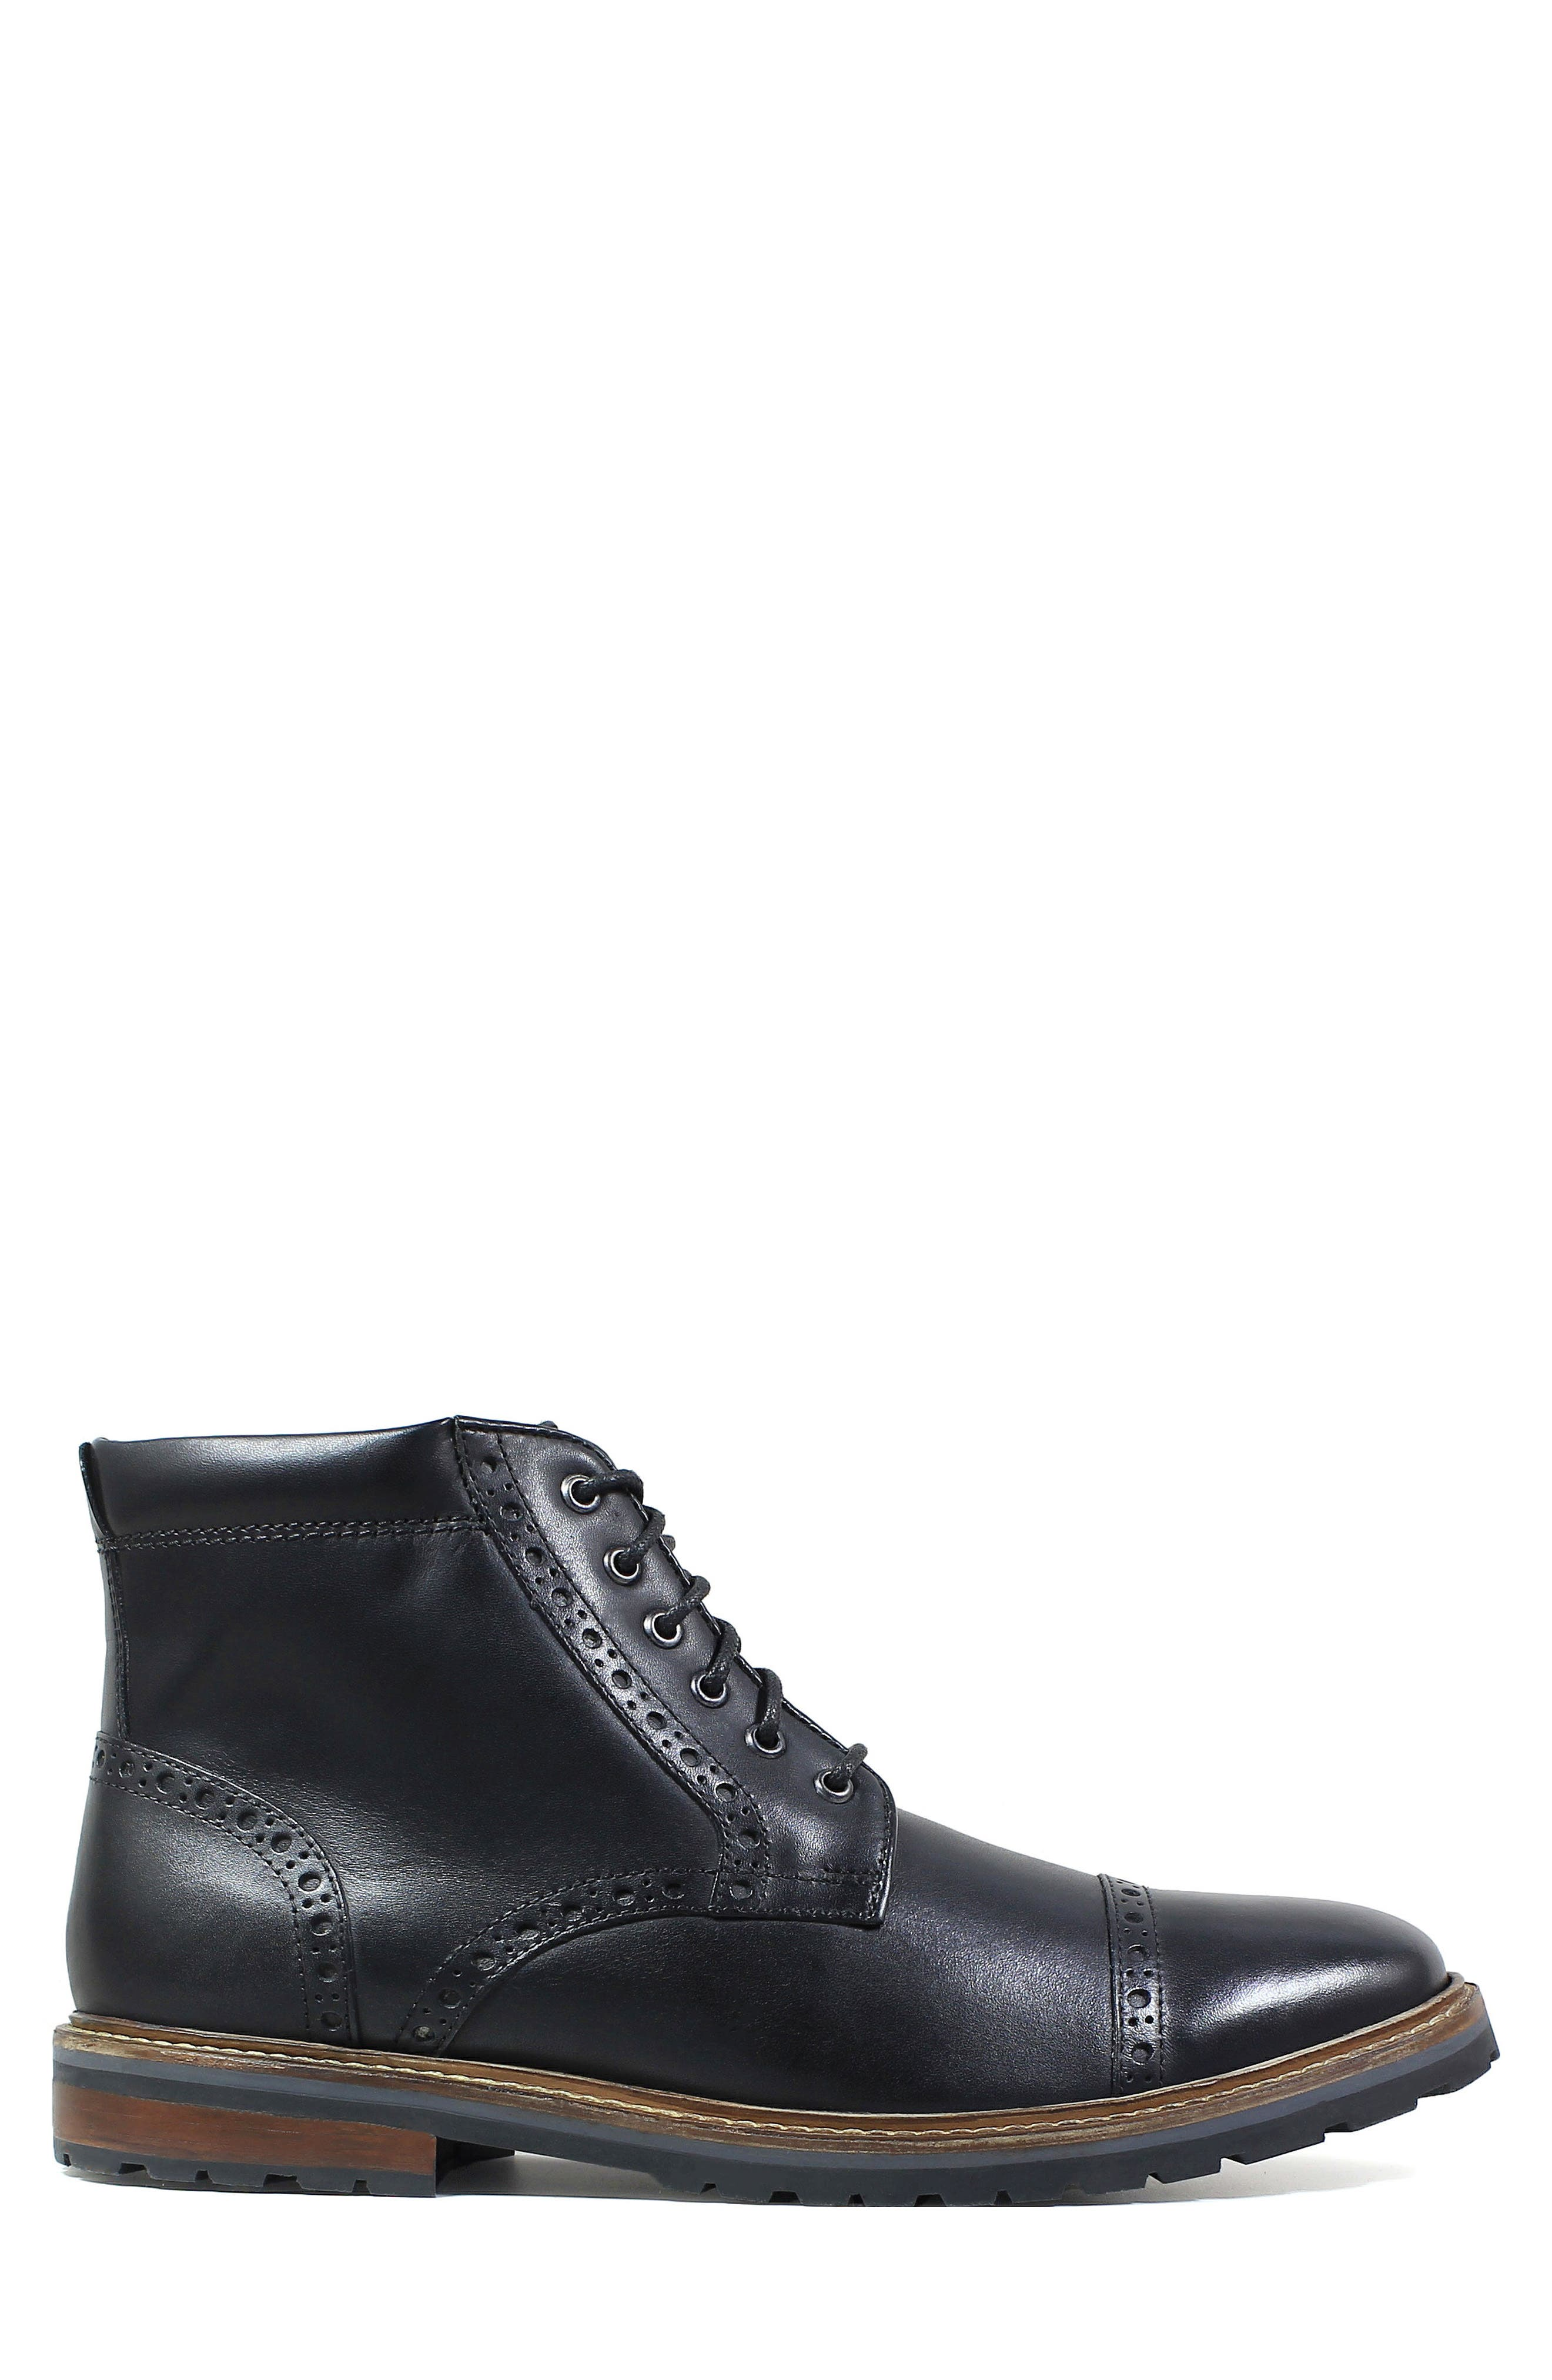 Alternate Image 3  - Florsheim Estabrook Cap Toe Boot (Men)